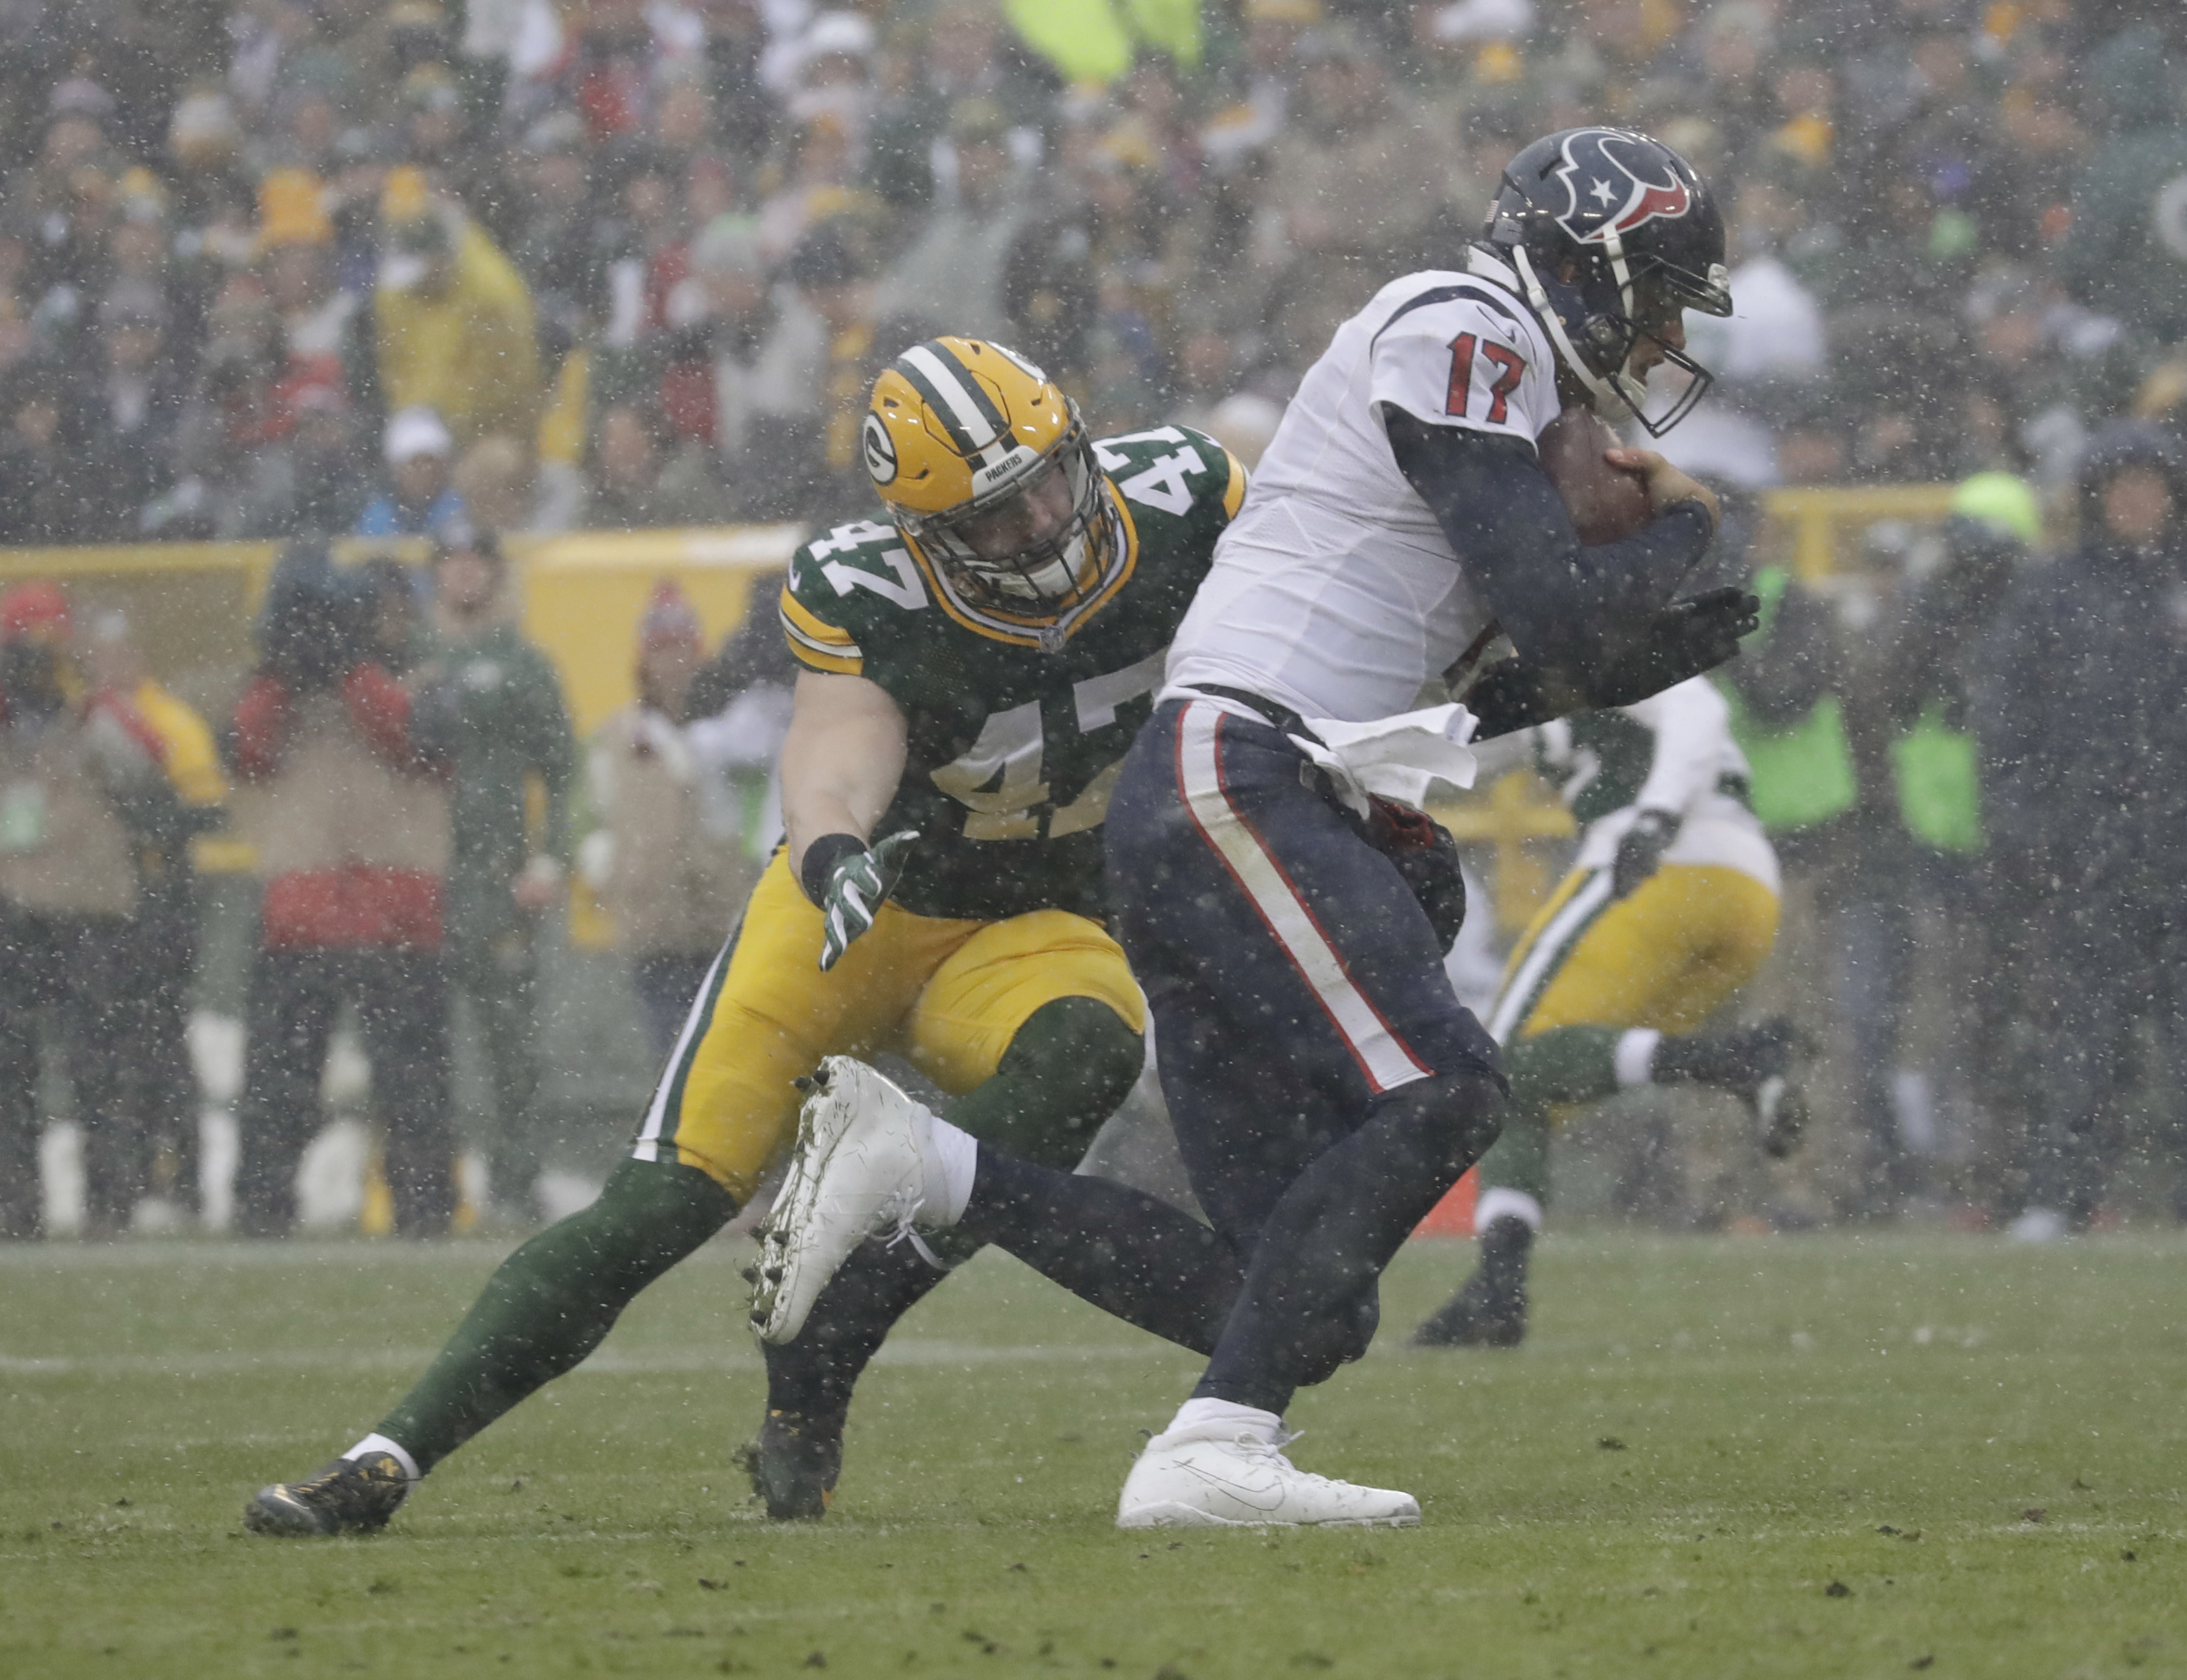 Houston Texans' Brock Osweiler runs away from Green Bay Packers' Jake Ryan during the first half of an NFL football game Sunday, Dec. 4, 2016, in Green Bay, Wis. (AP Photo/Morry Gash)